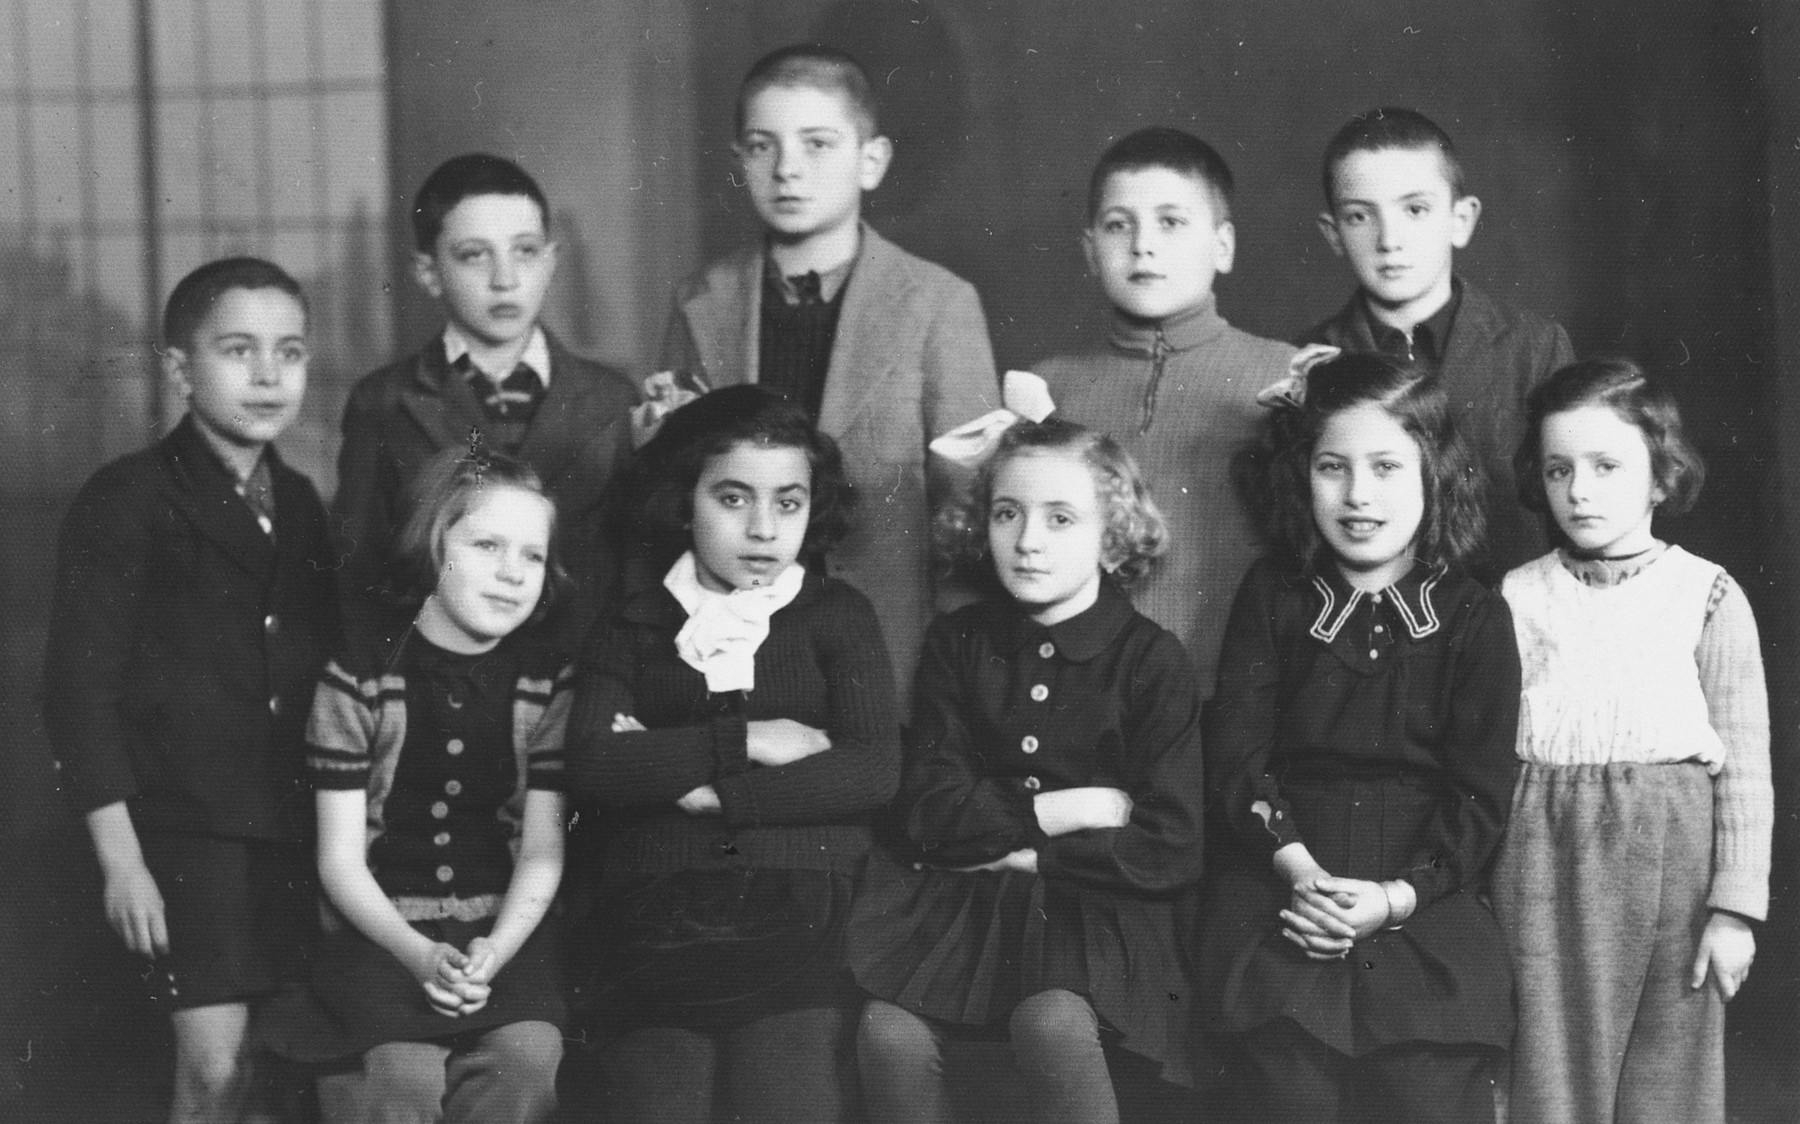 Group portrait of third-grade children in the Jewish school in Plovdiv, shortly before liberation.  Seated from left to right are Bott, Ruti Garti, Becky, Daisy, unknown, and Amy Garti.  Standing from left to right are Alexander (Sender), Emanuel Tchitchekik, Avram Ben Arroya, Nissim Majar, and Yitzhak Kobo.